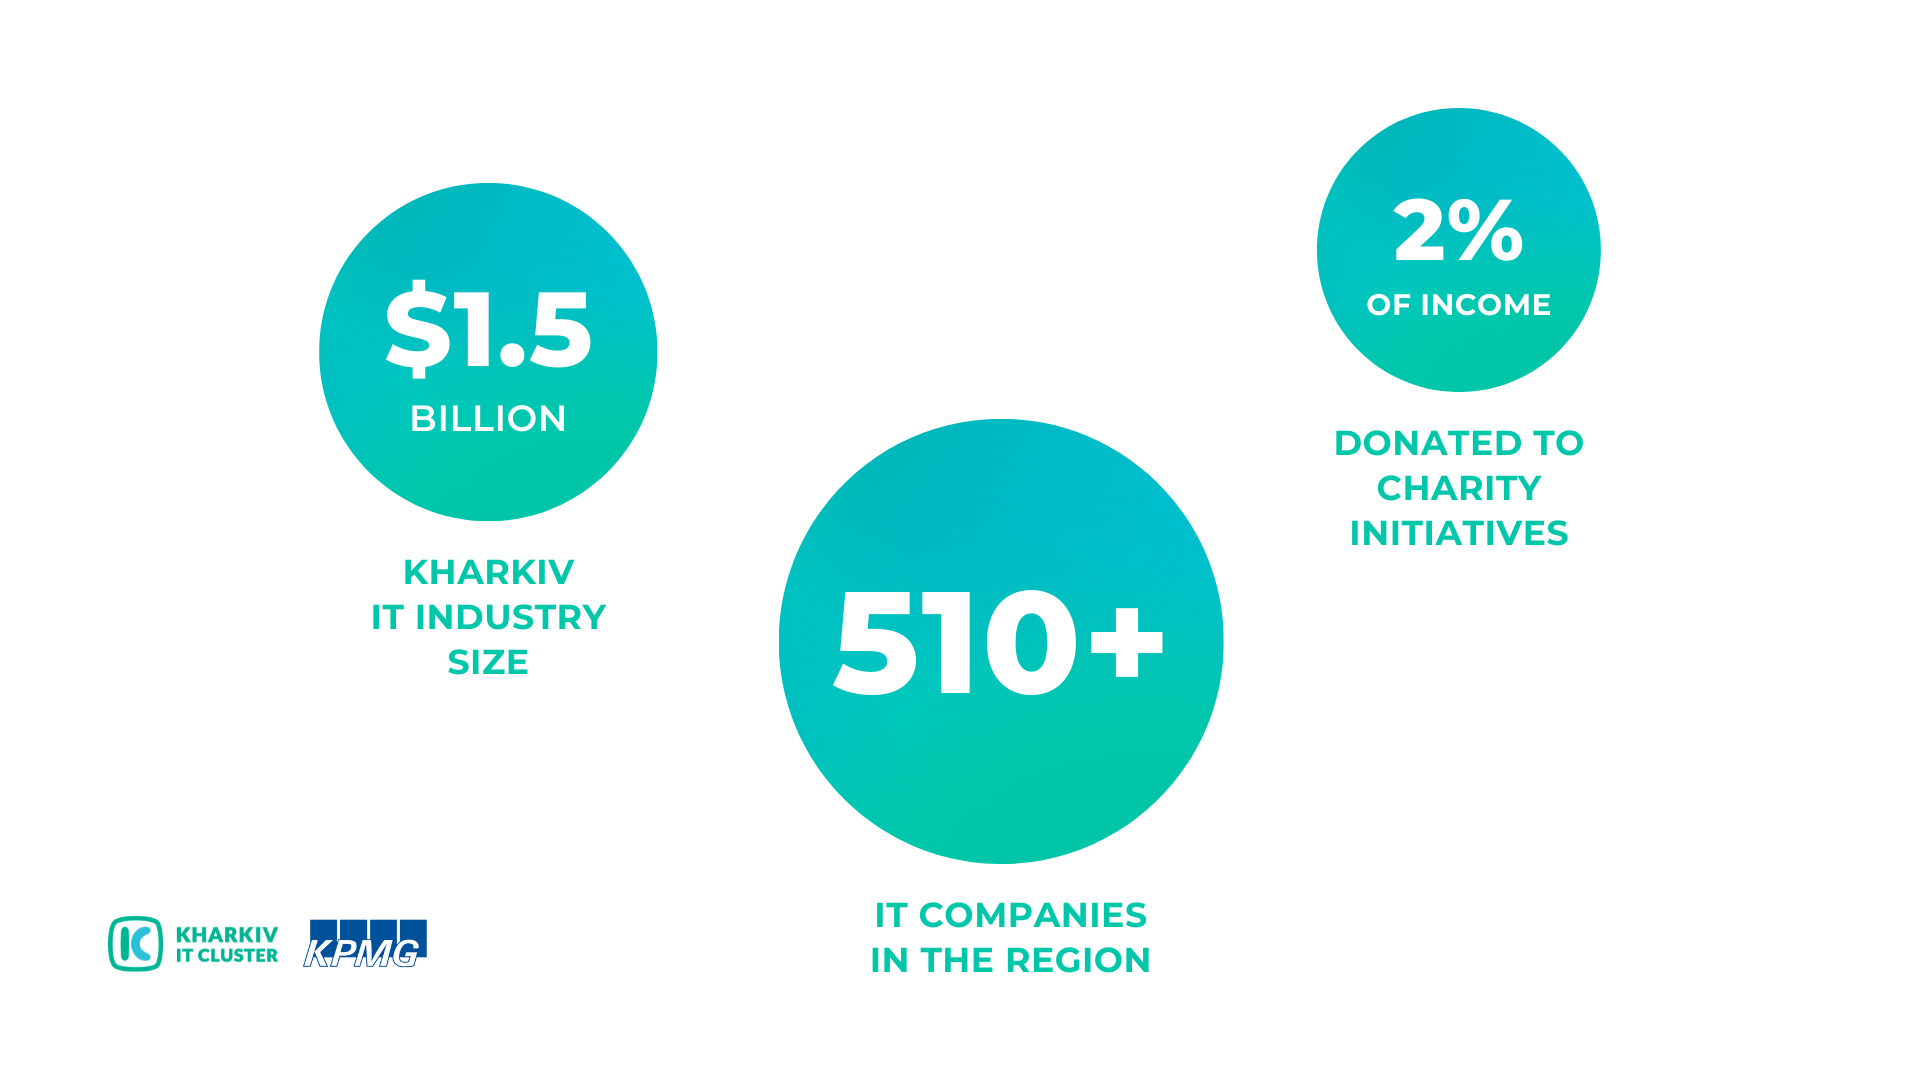 Infographics-Kharkiv-IT-Research-2021-ENG KHARKIV IT RESEARCH 2021: 45,000 IT SPECIALISTS, 511 IT COMPANIES, AND A 53% INDUSTRY VOLUME GROWTH OVER TWO YEARS